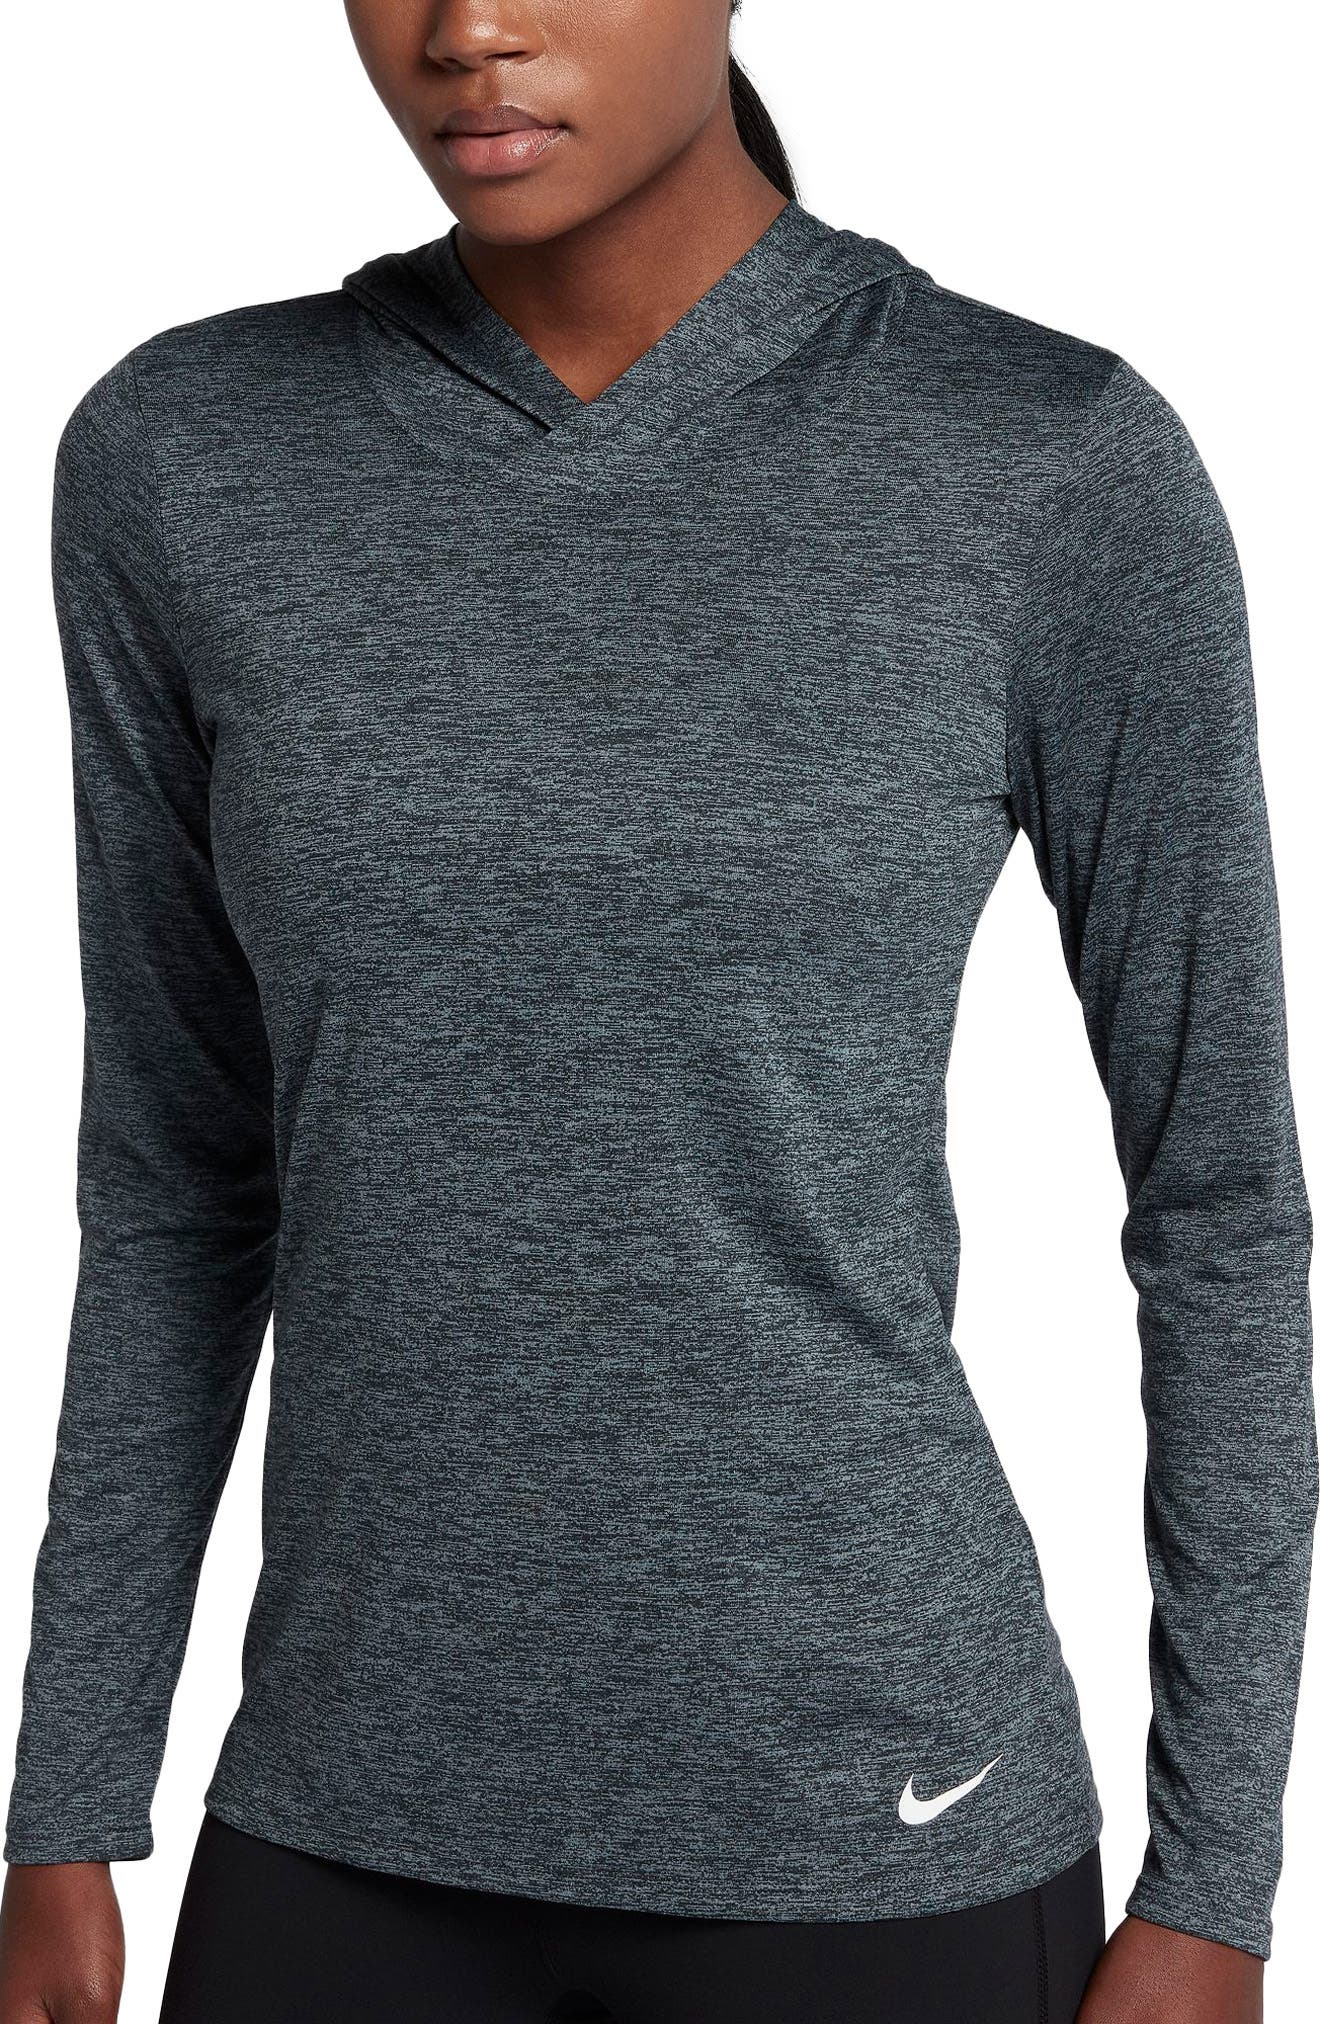 Dry Legend Hooded Training Top,                         Main,                         color, Black/ Cool Grey/ White